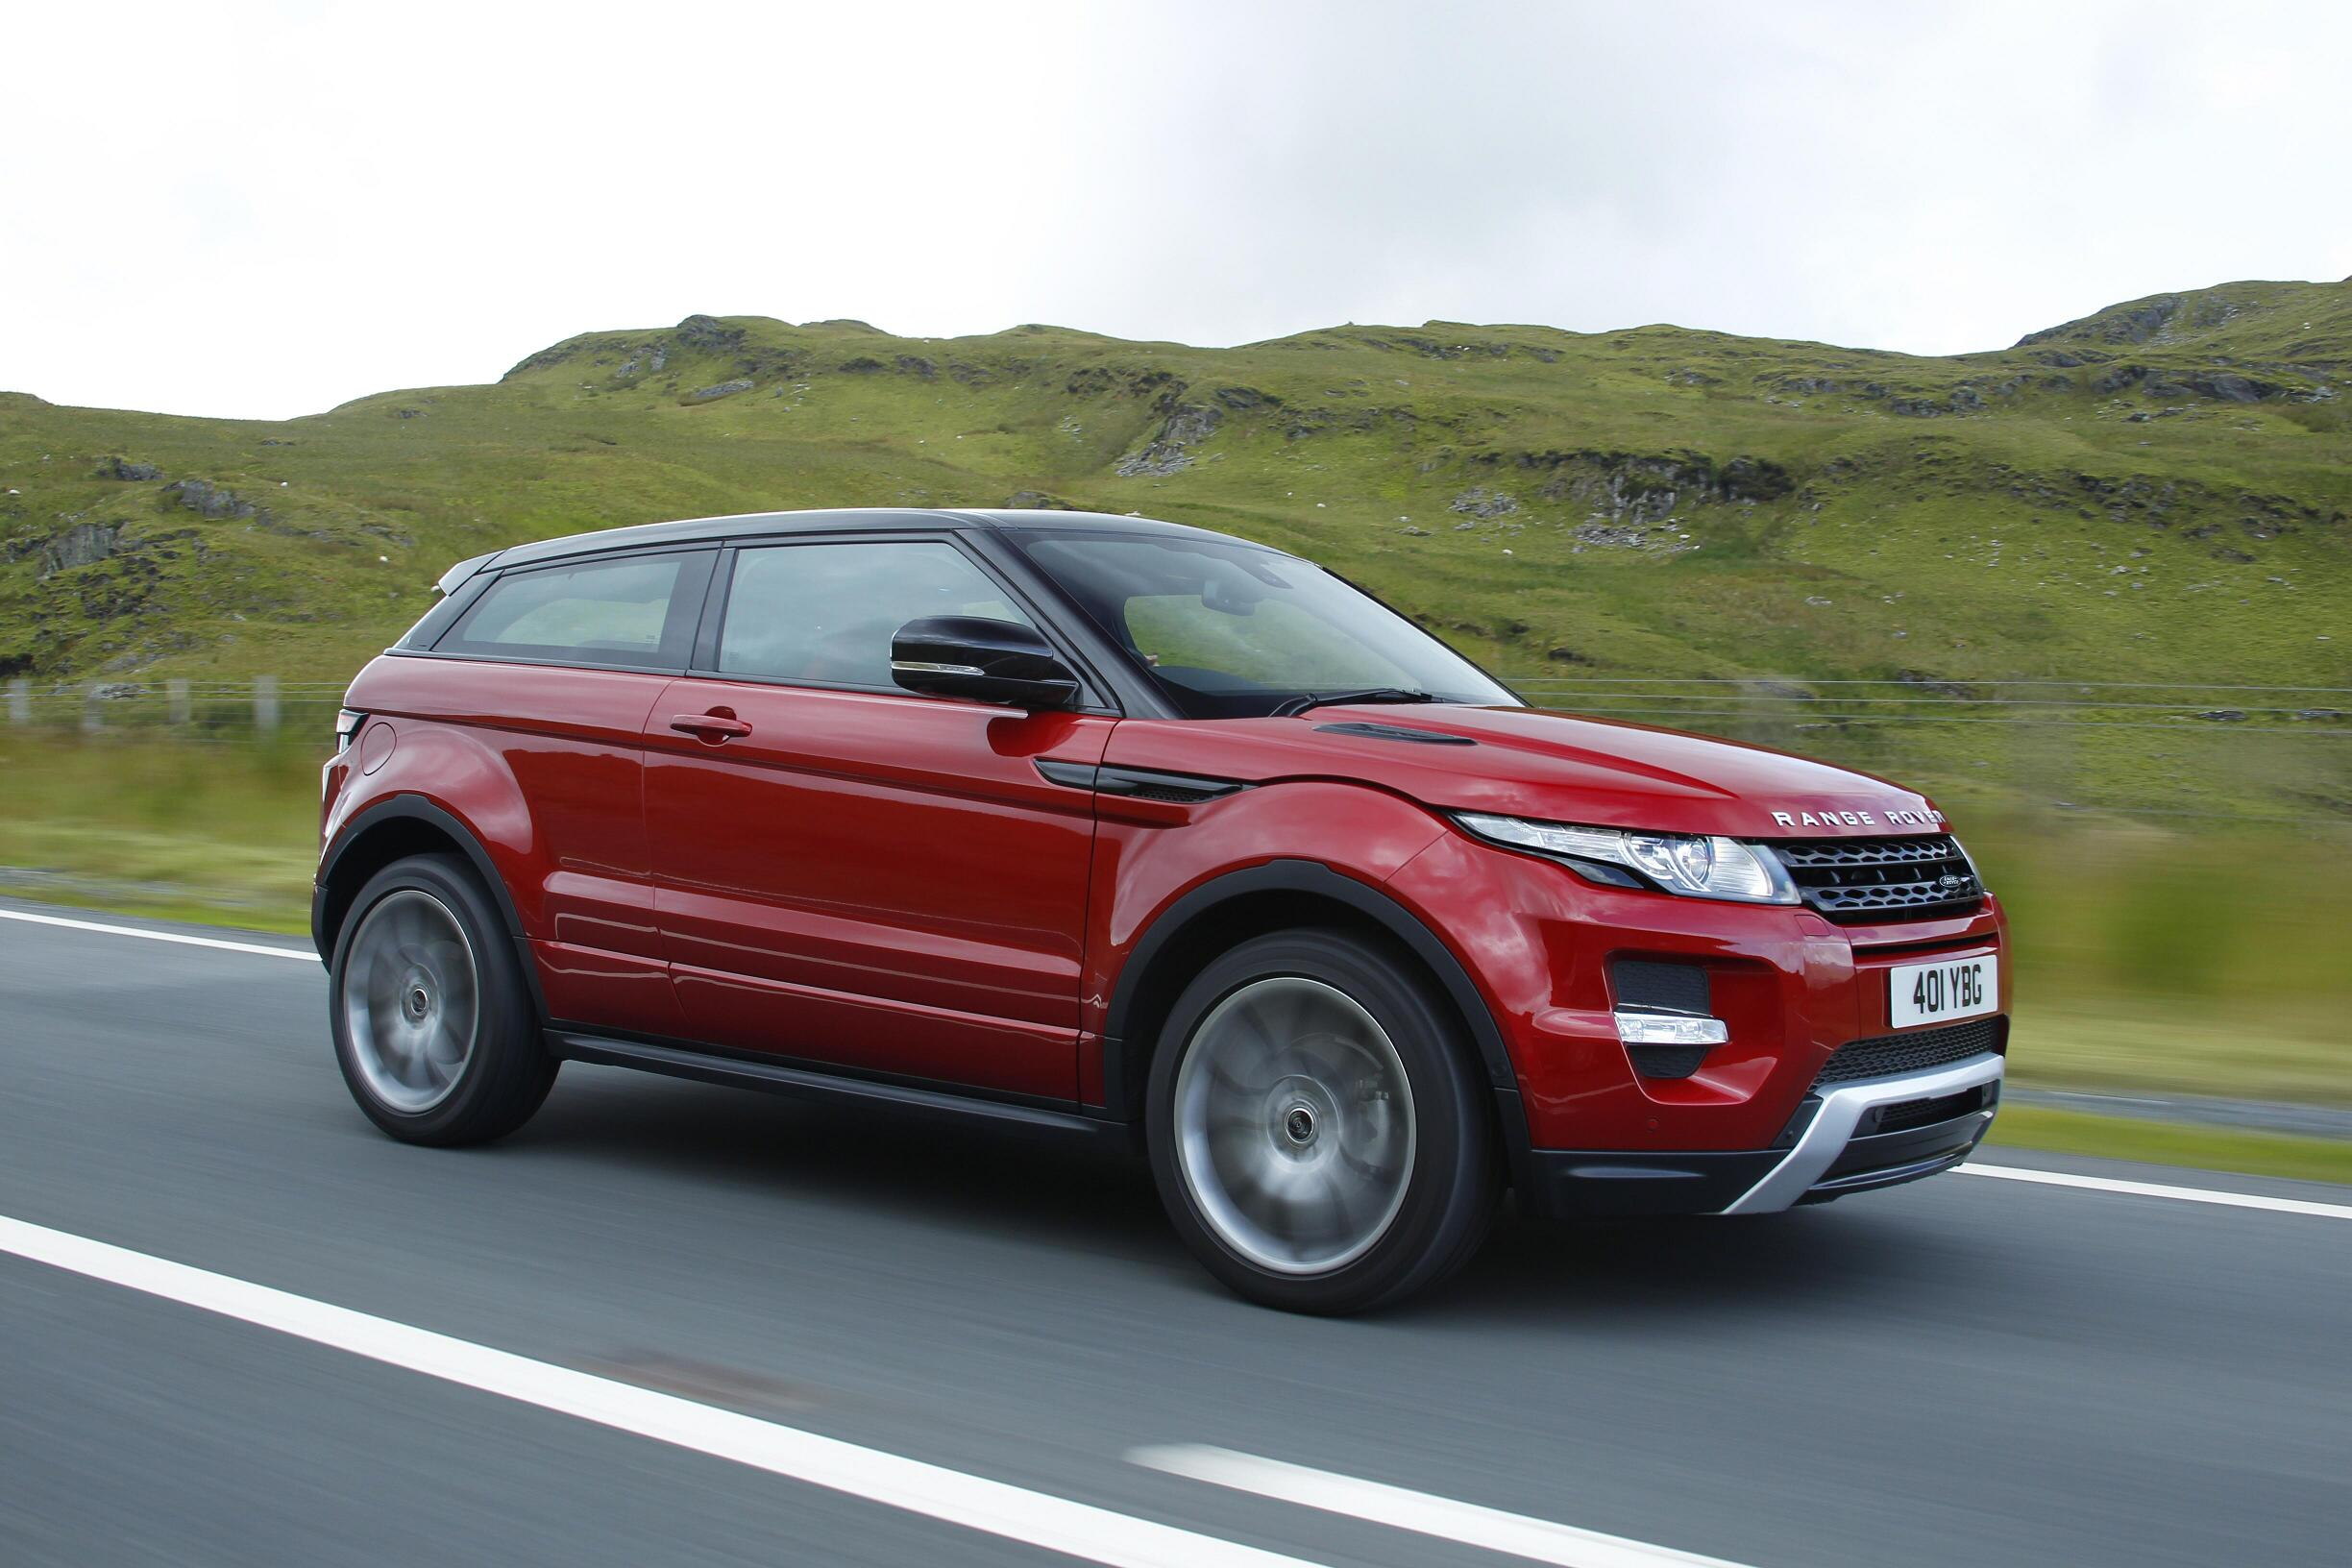 rip 3 door land rover range rover evoque goes away for 2018. Black Bedroom Furniture Sets. Home Design Ideas